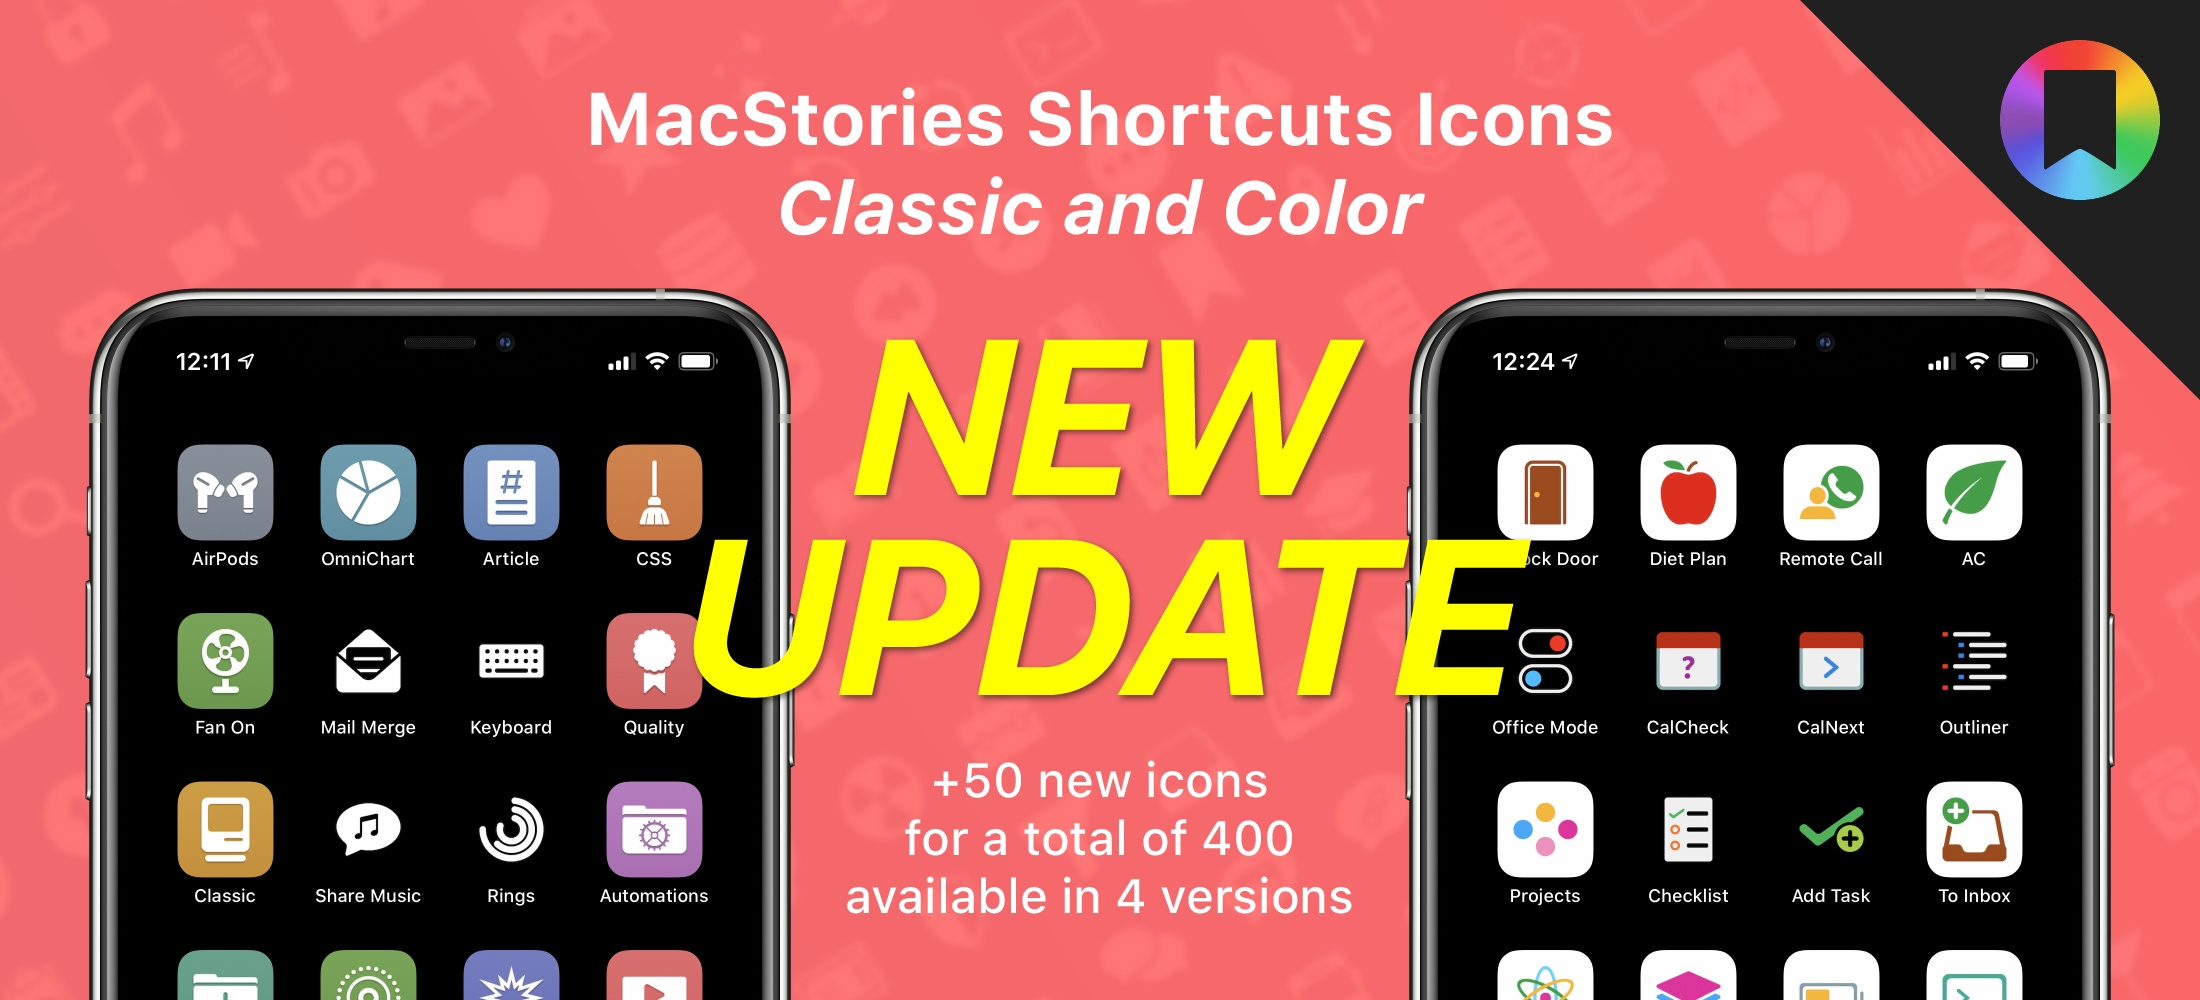 Some of the new icons included in the latest MacStories Shortcuts Icons update.